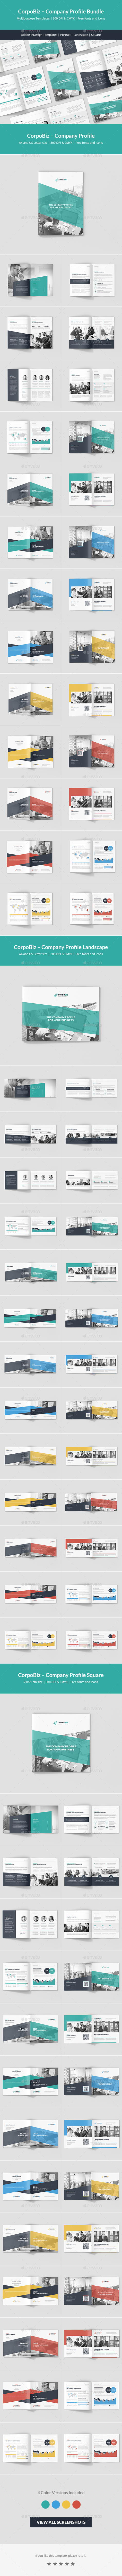 CorpoBiz – Business and Corporate Company Profile Brochures Bundle 3 in 1 - Corporate Brochures